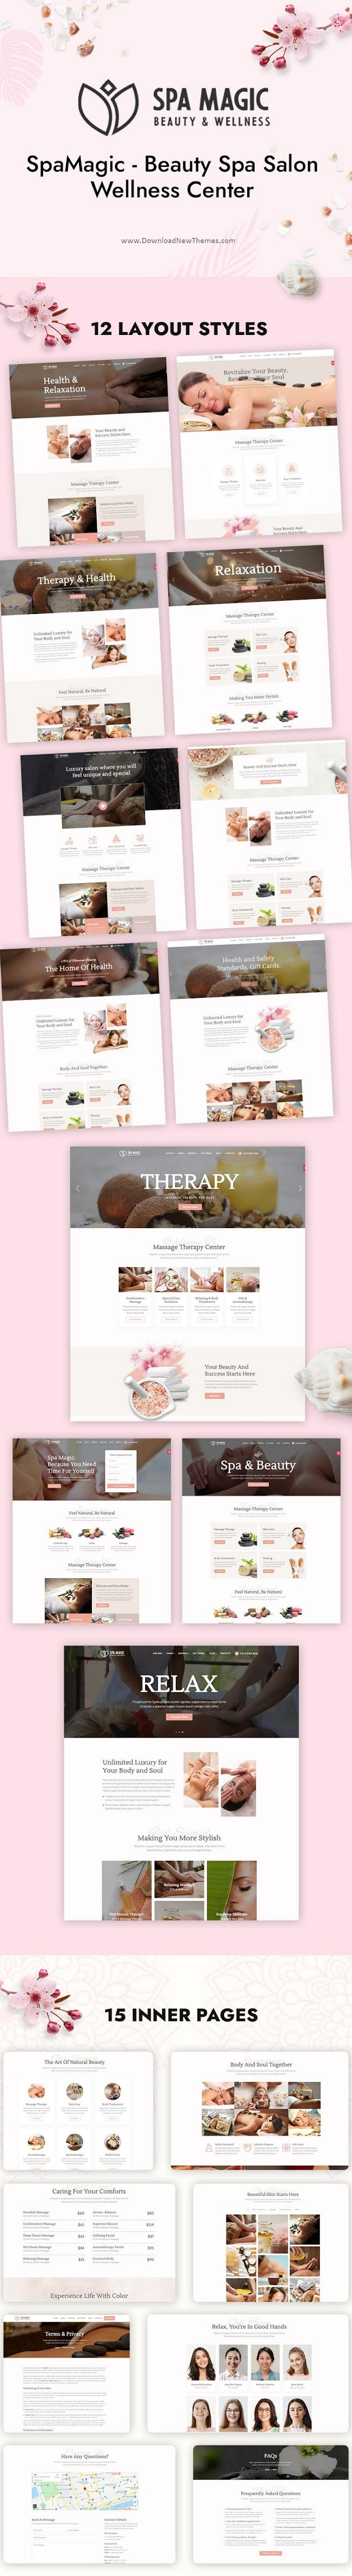 Beauty Spa Salon Wellness Center Premium Template